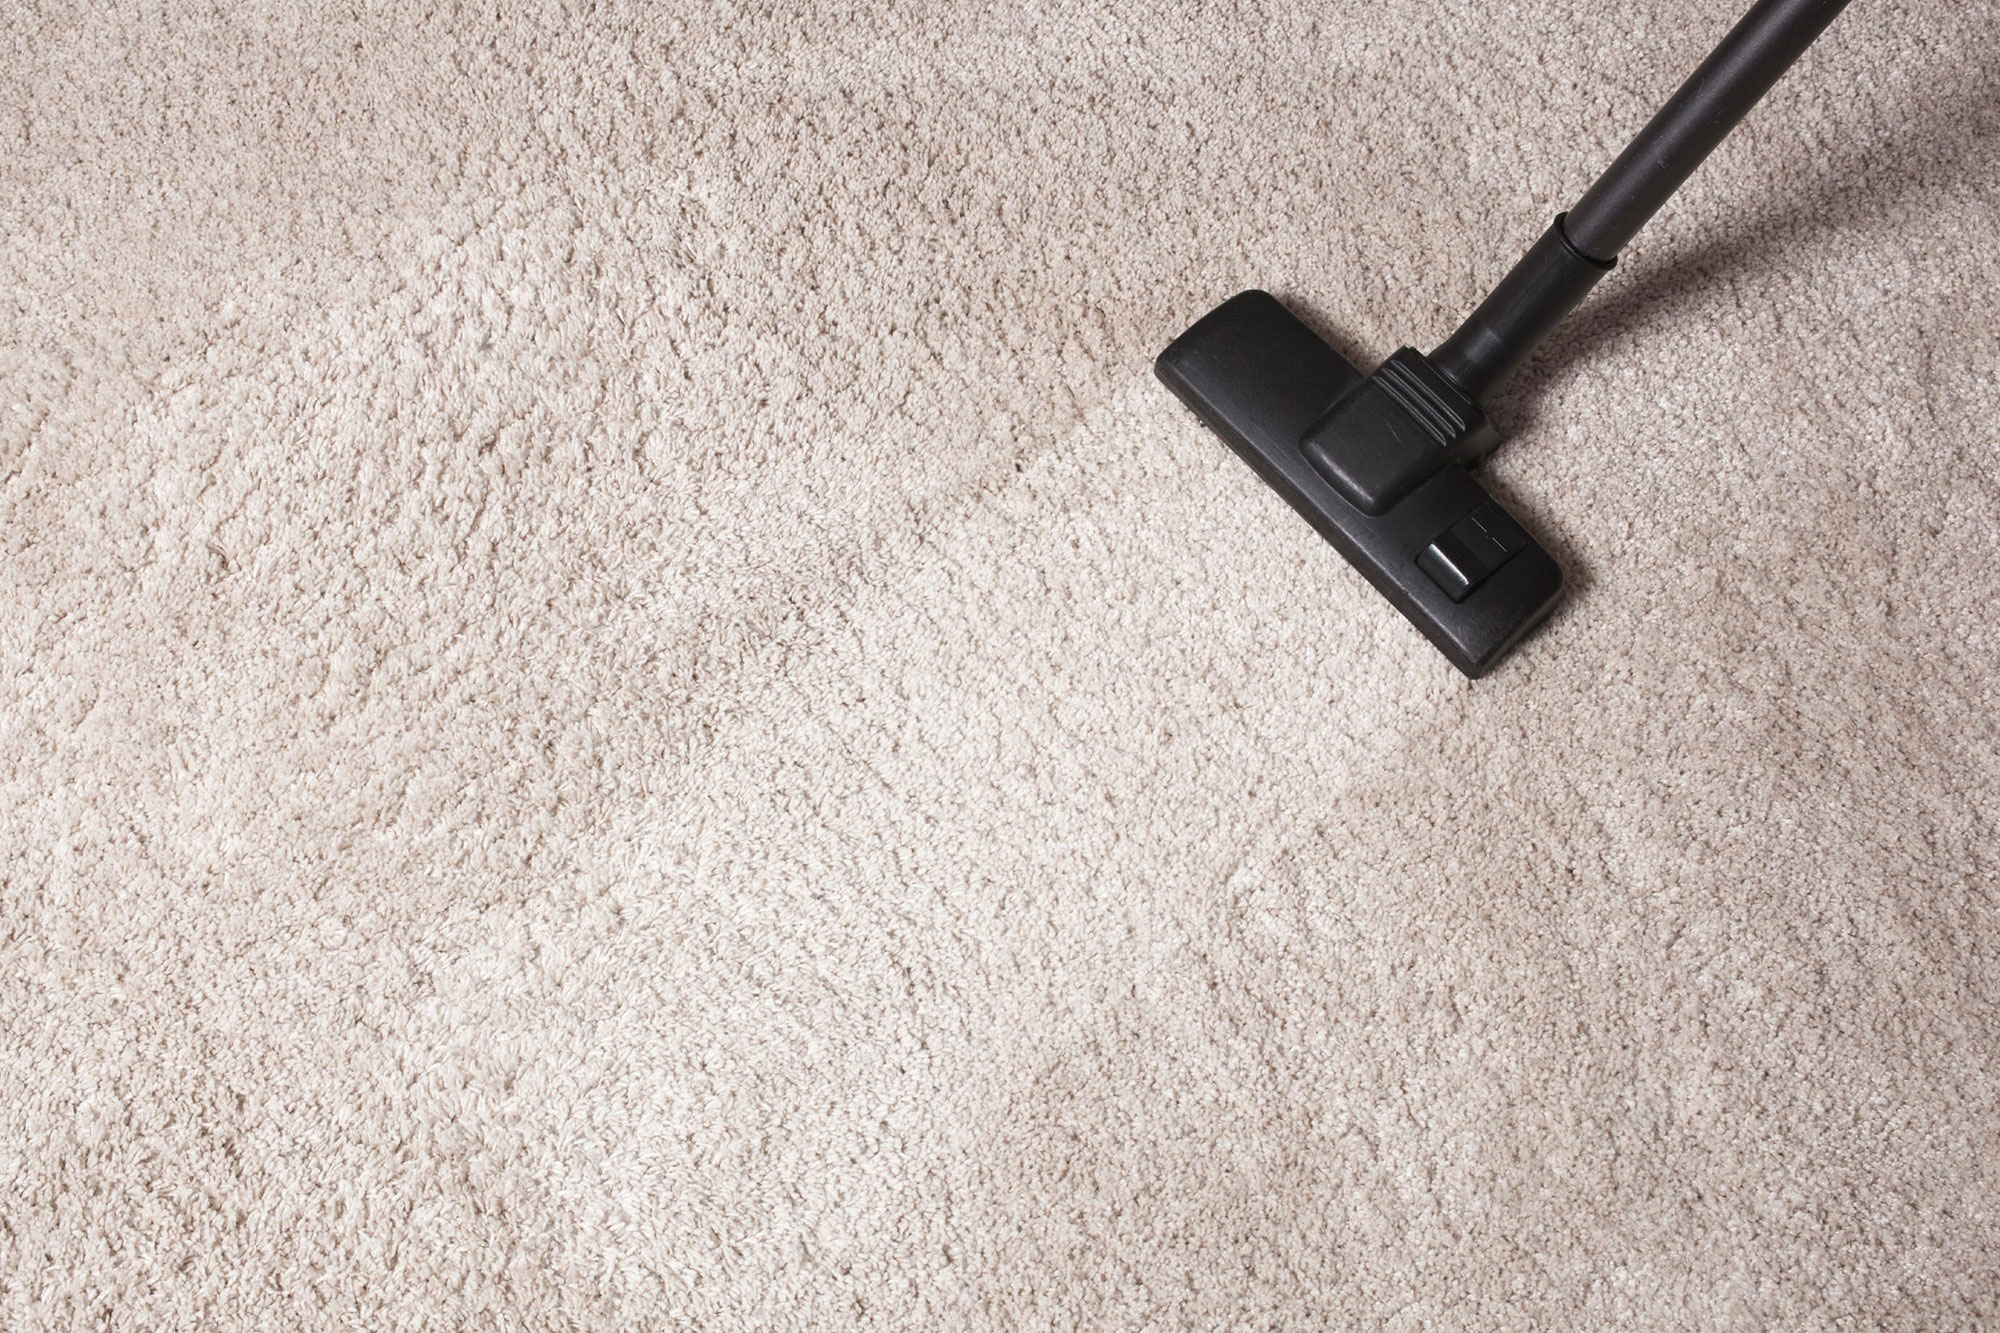 Image result for Carpet Cleaning Irvine""